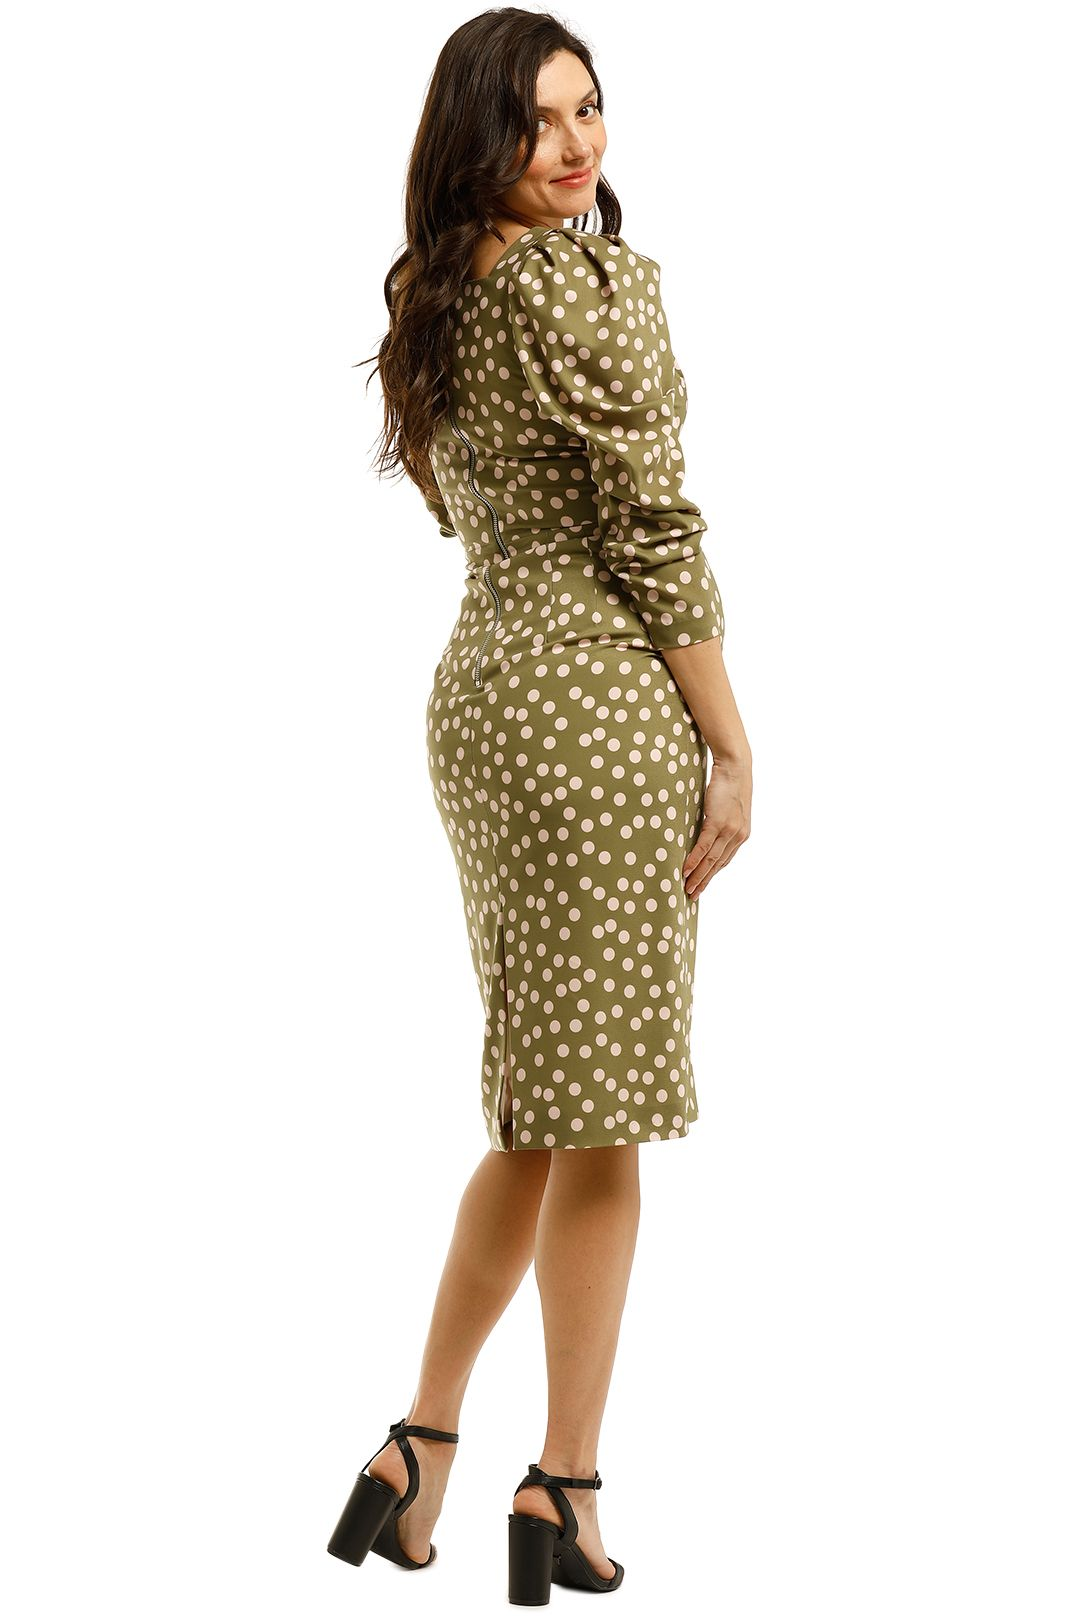 By-Johnny-Peach-Polka-V-Plunge-Midi-Dress-Olive-Peach-Back